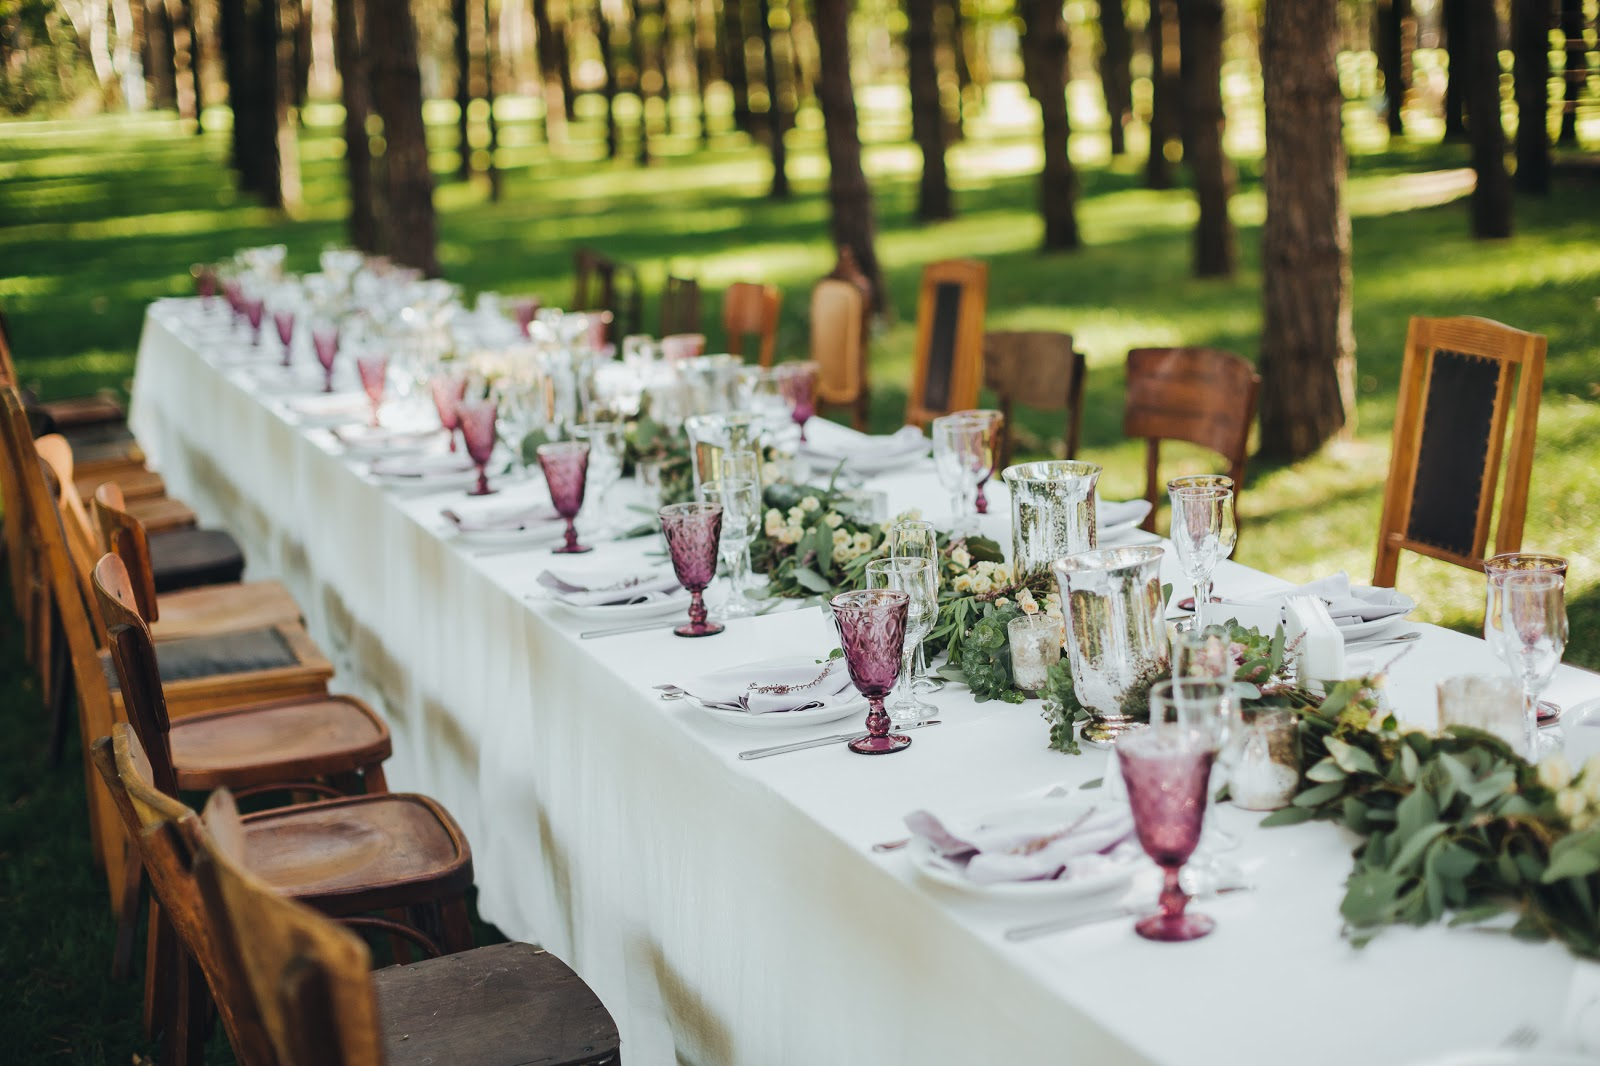 20 ideas para decorar la mesa de tu boda con estilo - Ideas para decoracion rustica ...